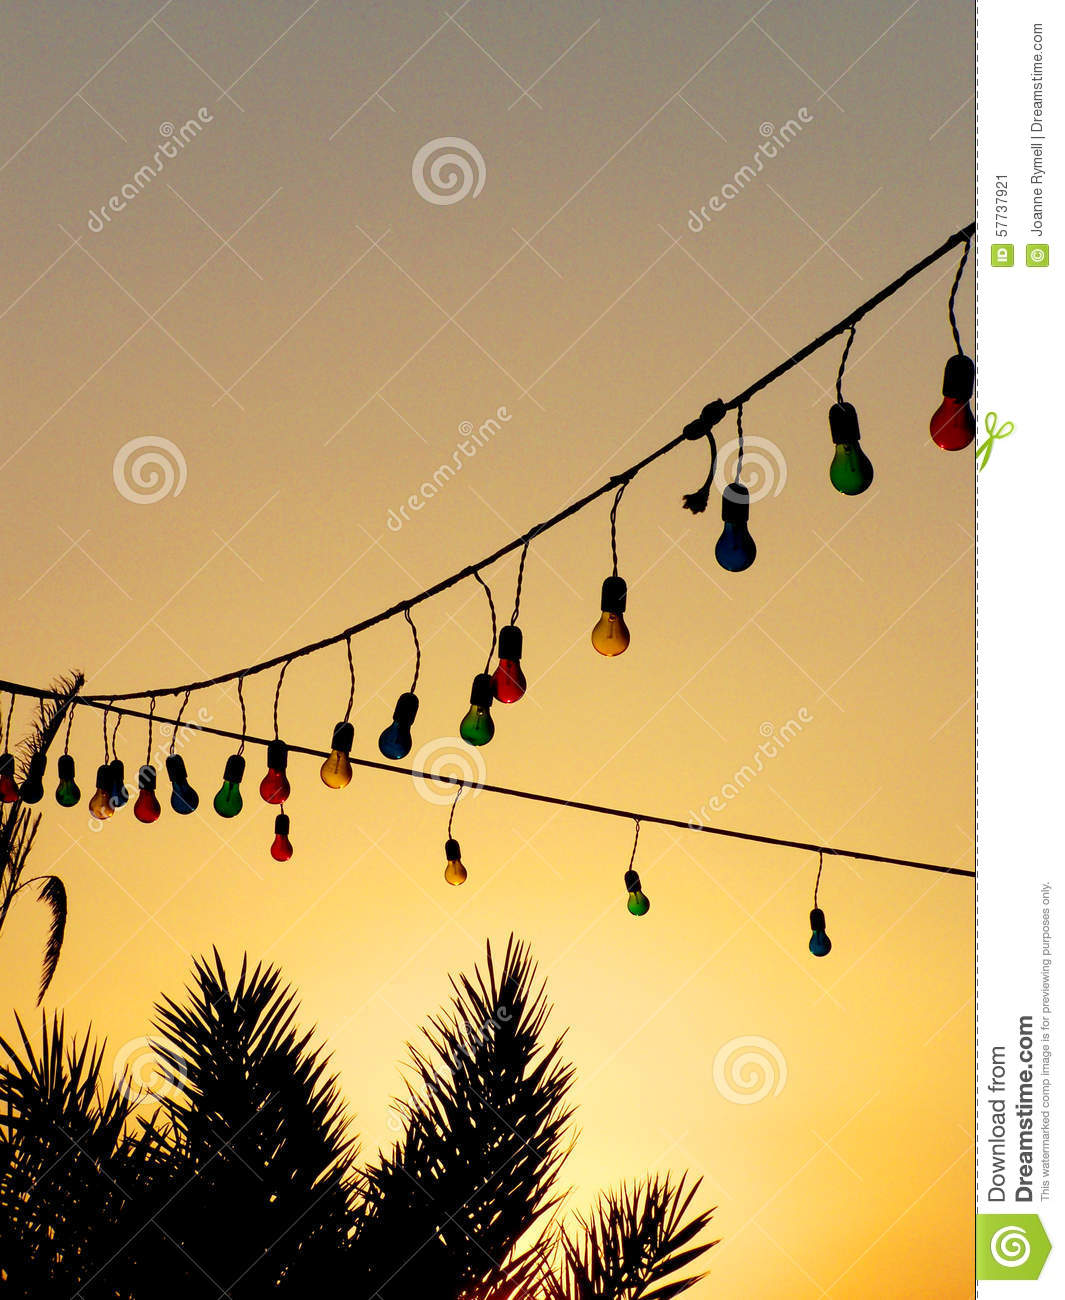 Colourful Light Bulbs And Palm Trees At Sunset Stock Photo - Image: 57737921